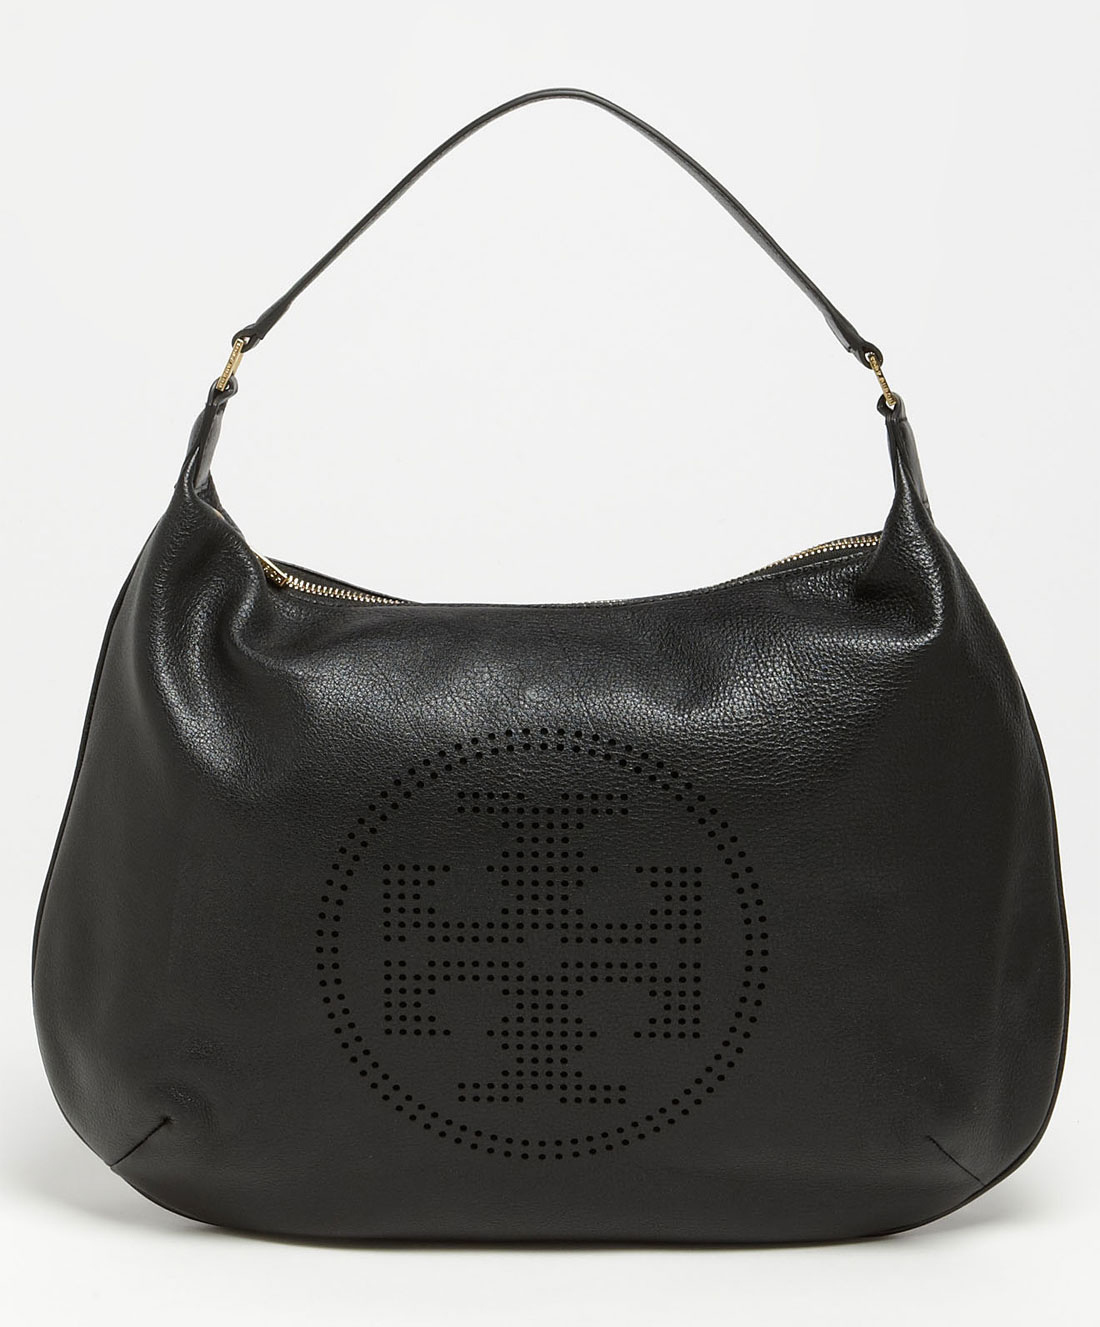 Tory burch black perforated logo hobo product 2 5629559 965538162.jpeg